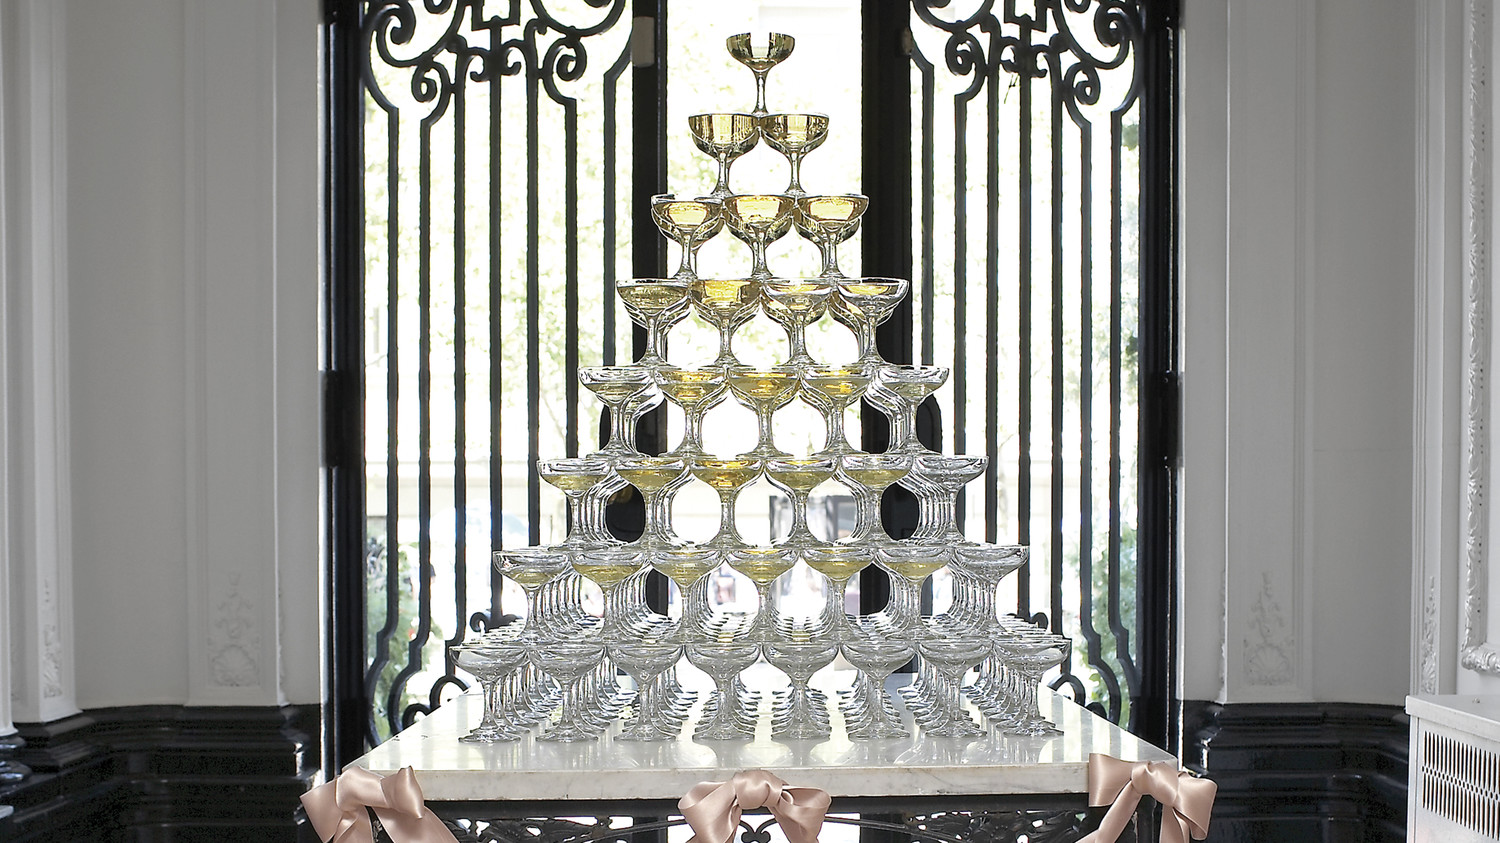 how to build a champagne tower martha stewart weddings centerpieces for wedding shower diy centerpieces for